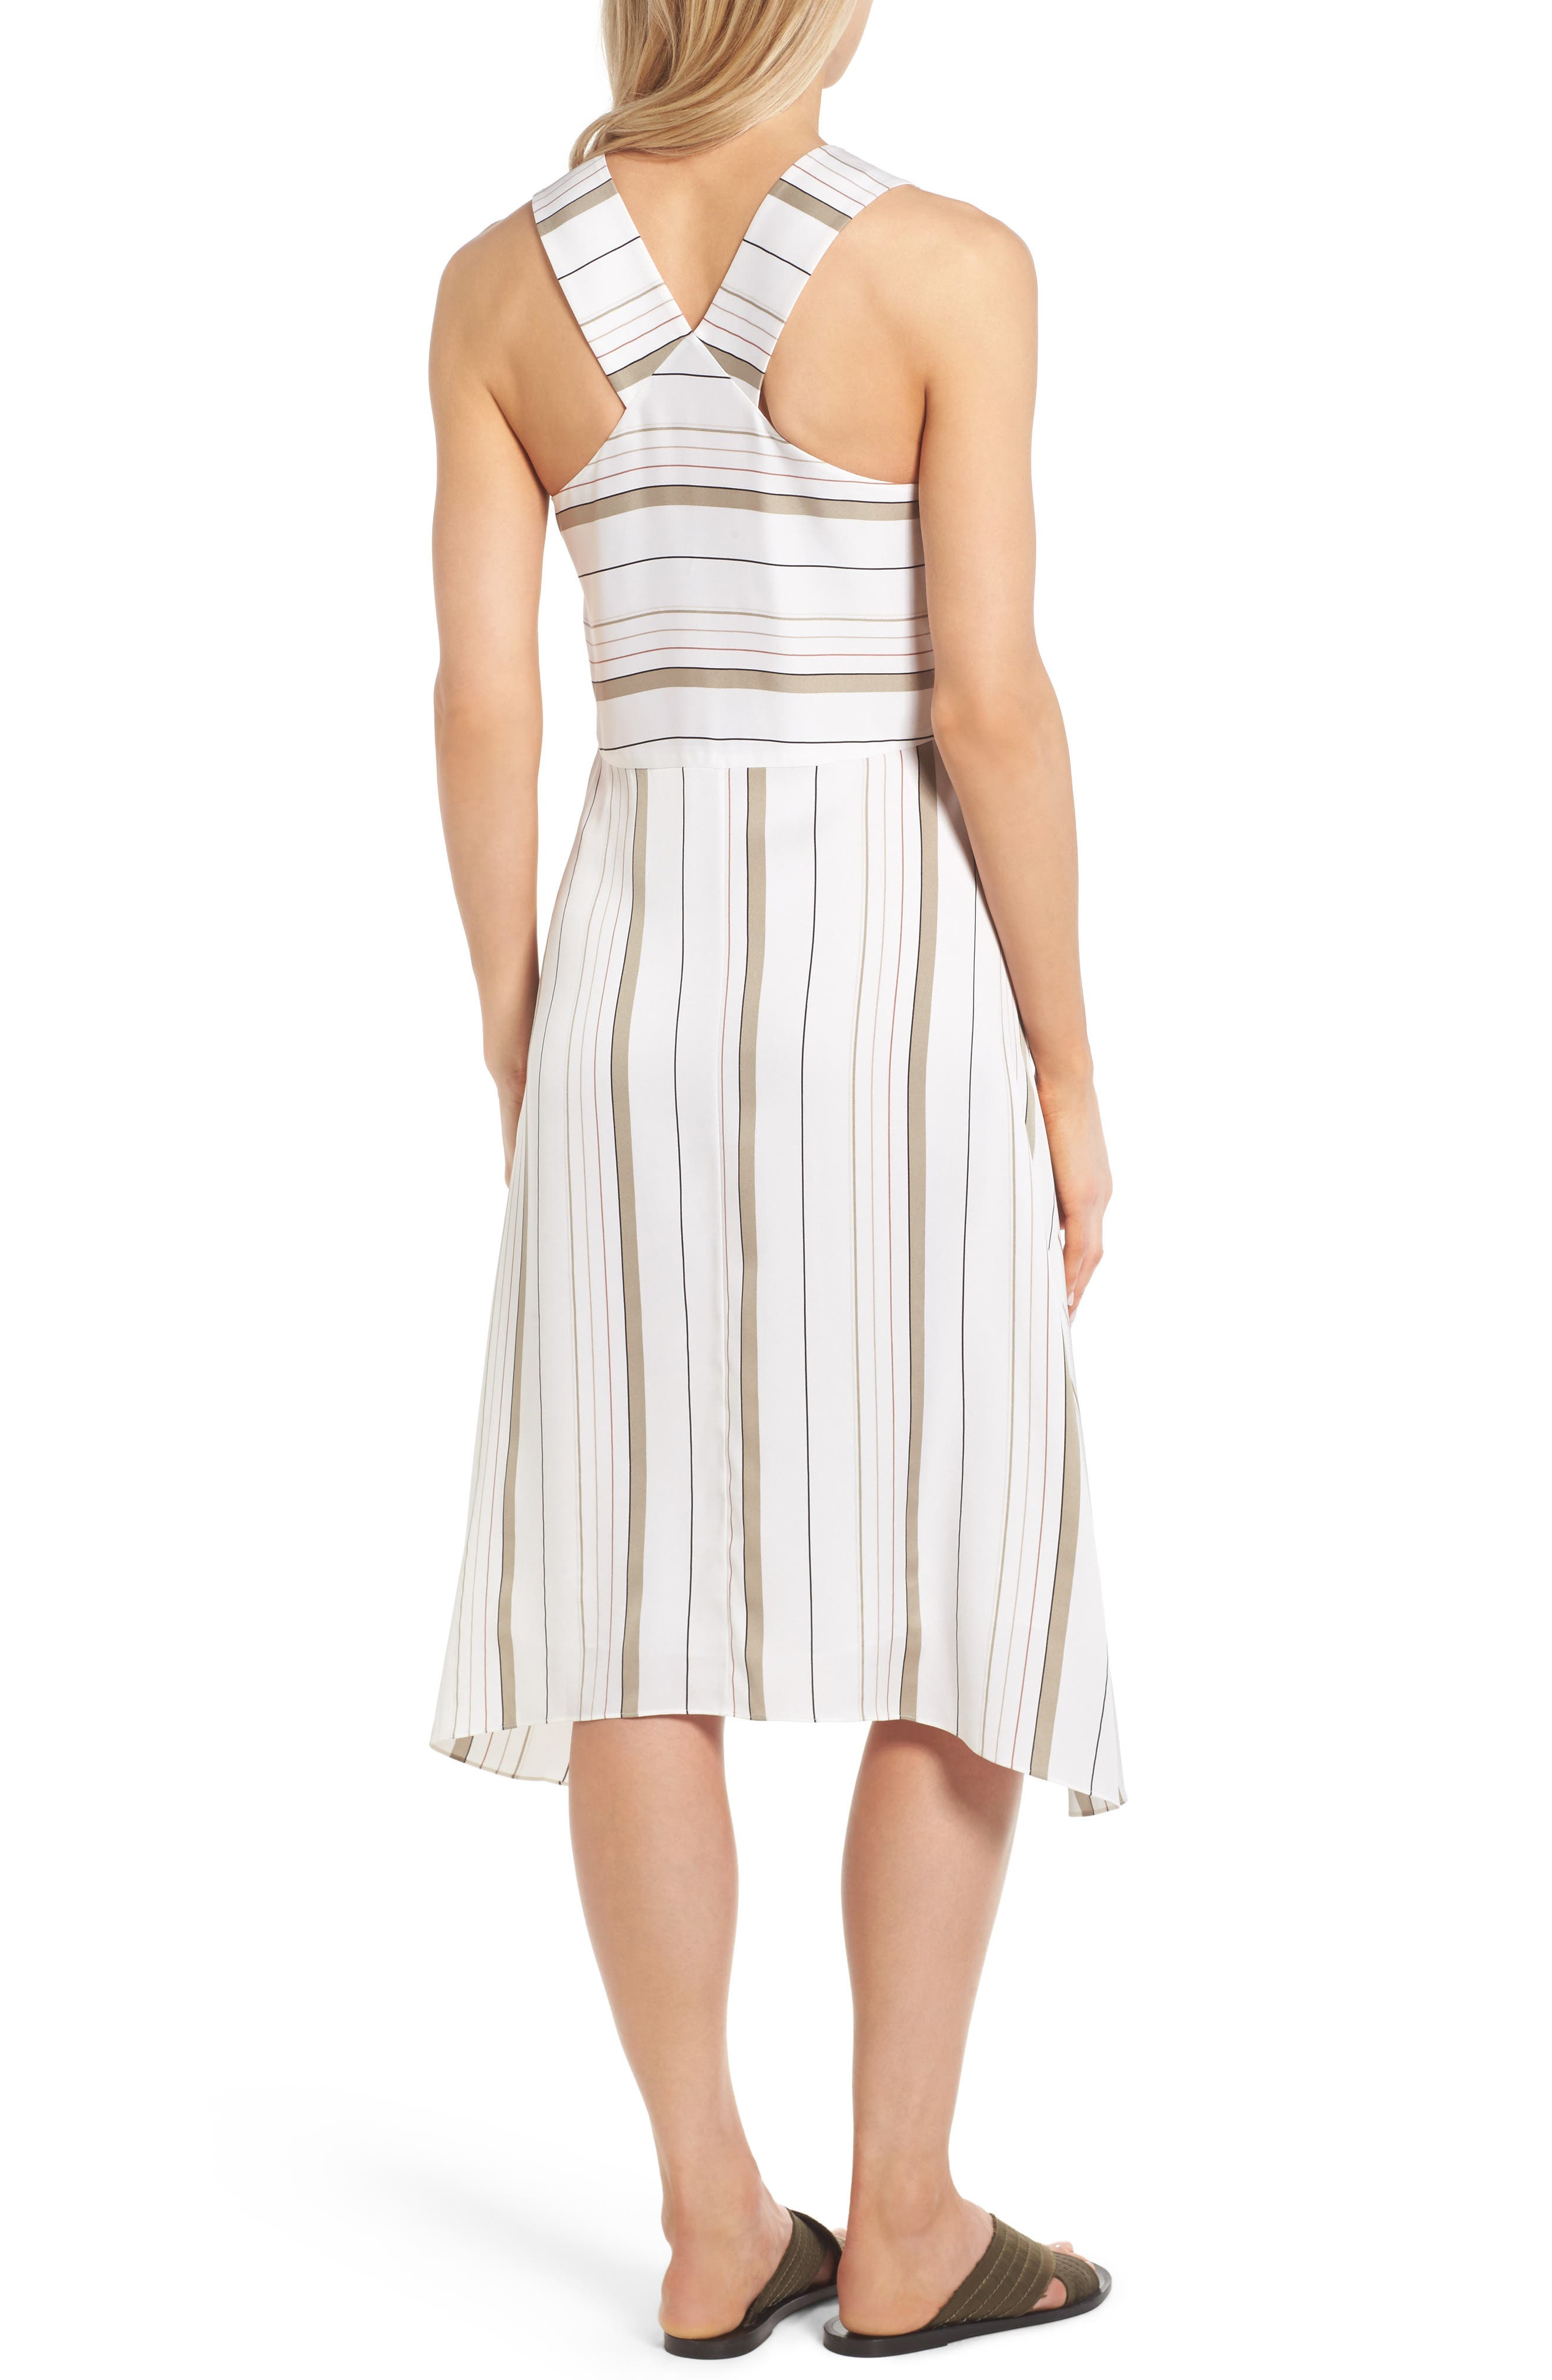 NORDSTROM COLLECTION, Stripe Stretch Silk Dress, Alternate thumbnail 2, color, 900